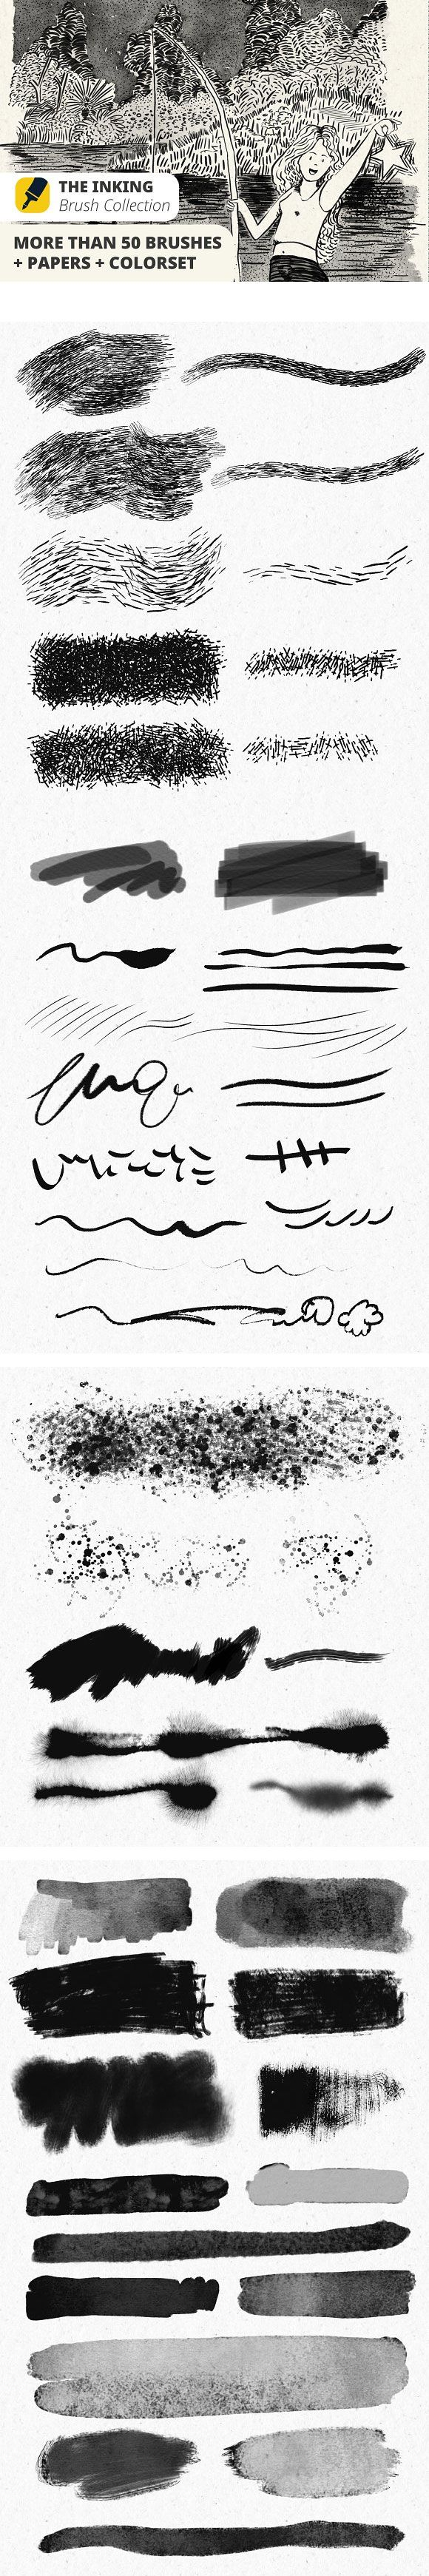 The Inking Collection #Brushes : This is a collection of brushes focused on digital inking. More than 50 different strokes including types of dry and wet brushes. Classic pen for drawing, #calligraphy and more. ( #artist #art #portrait #watercolor #photoshop #comic )